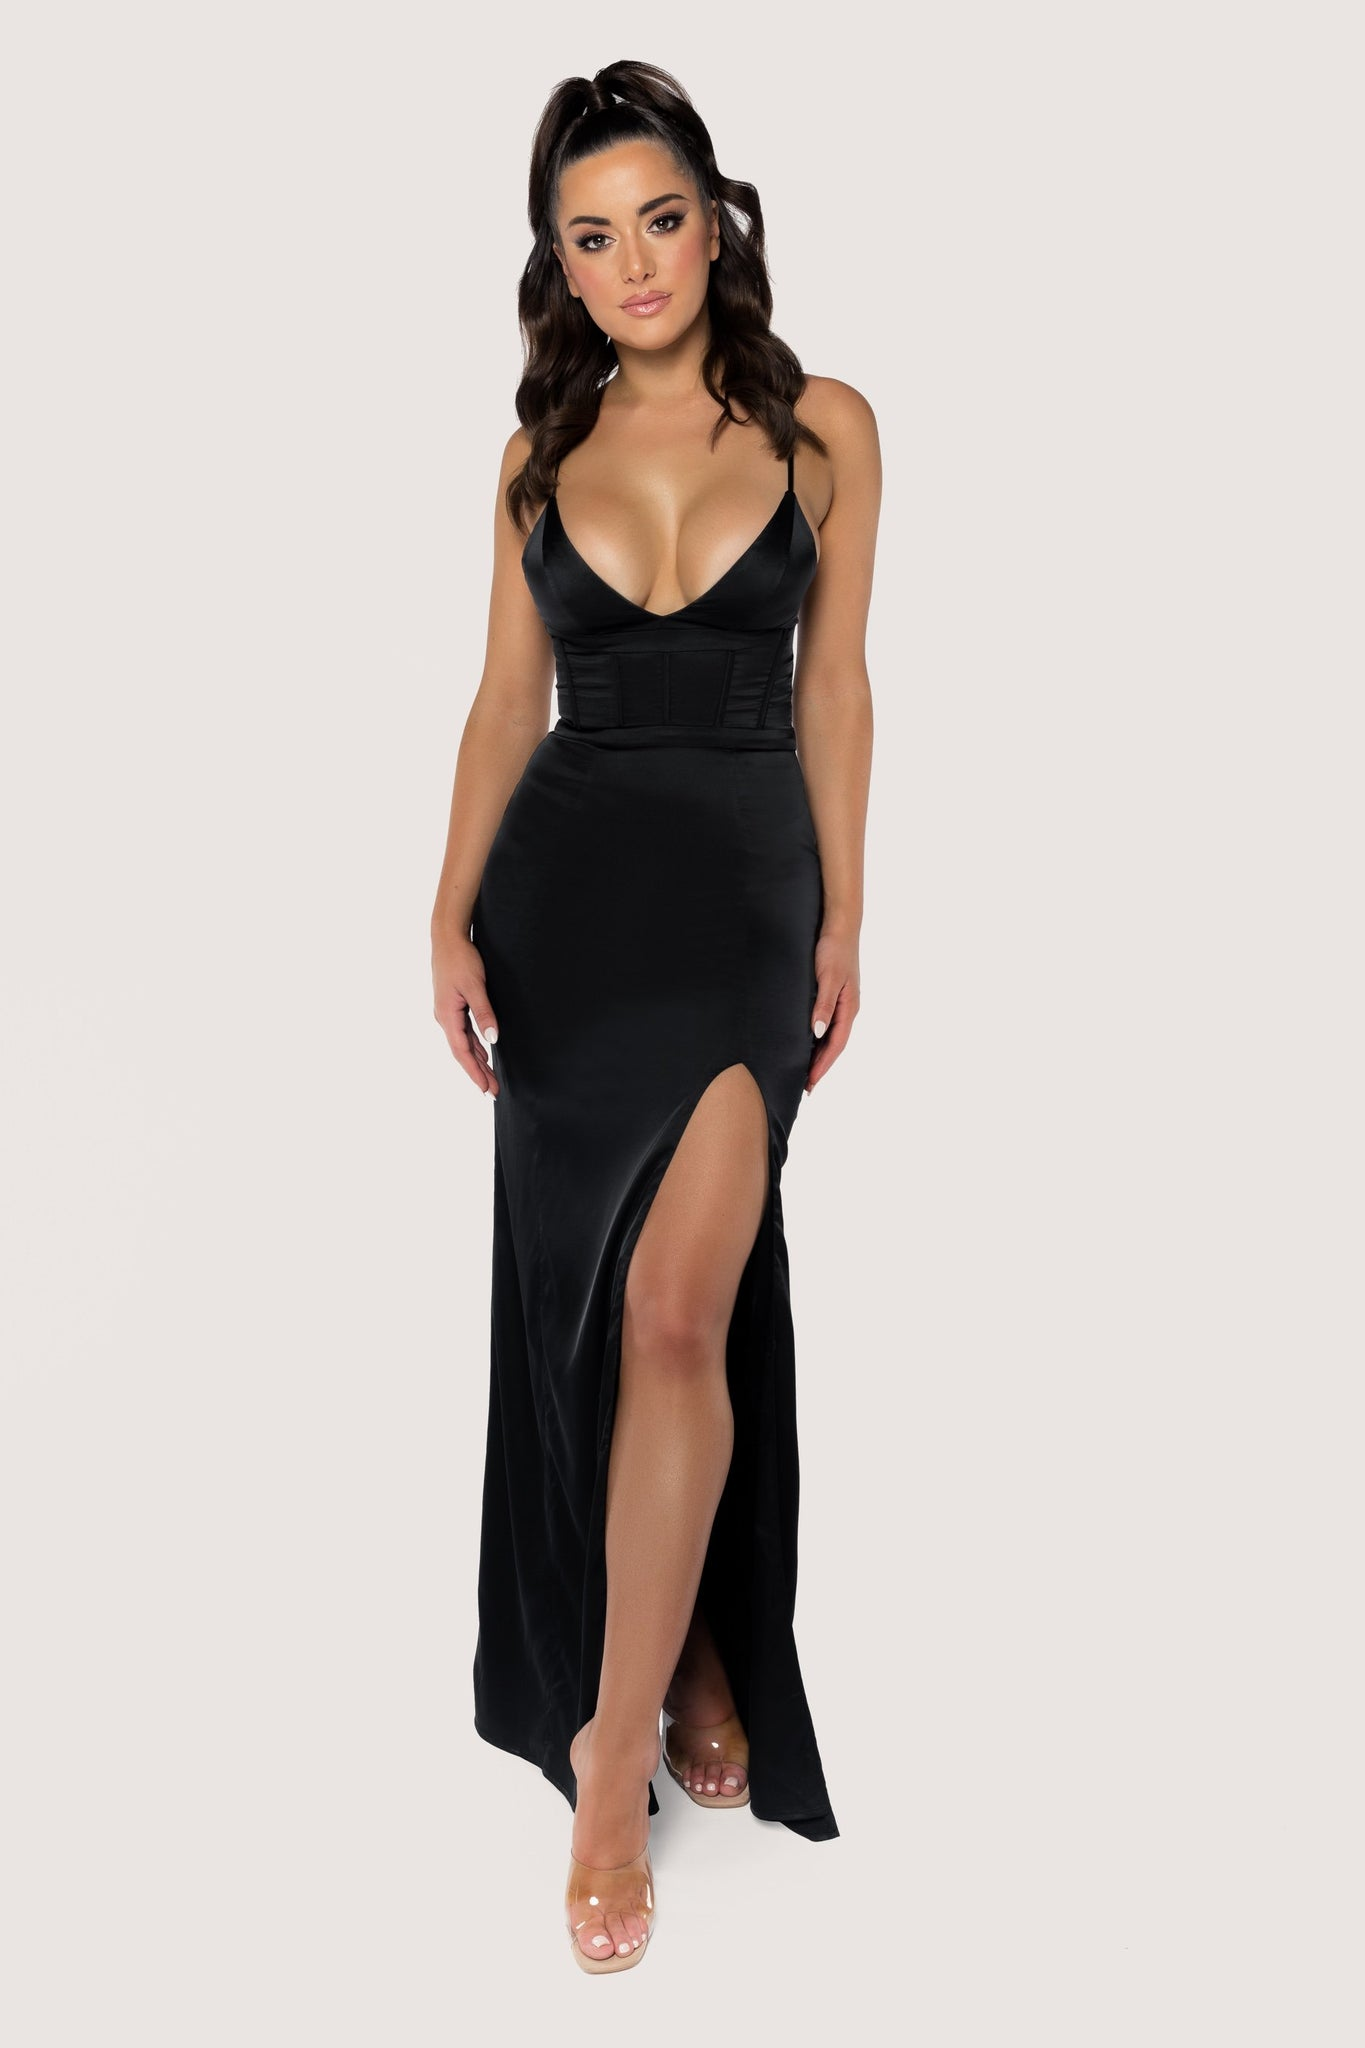 Dania Thin Strap Plunge Maxi Dress - Black - MESHKI